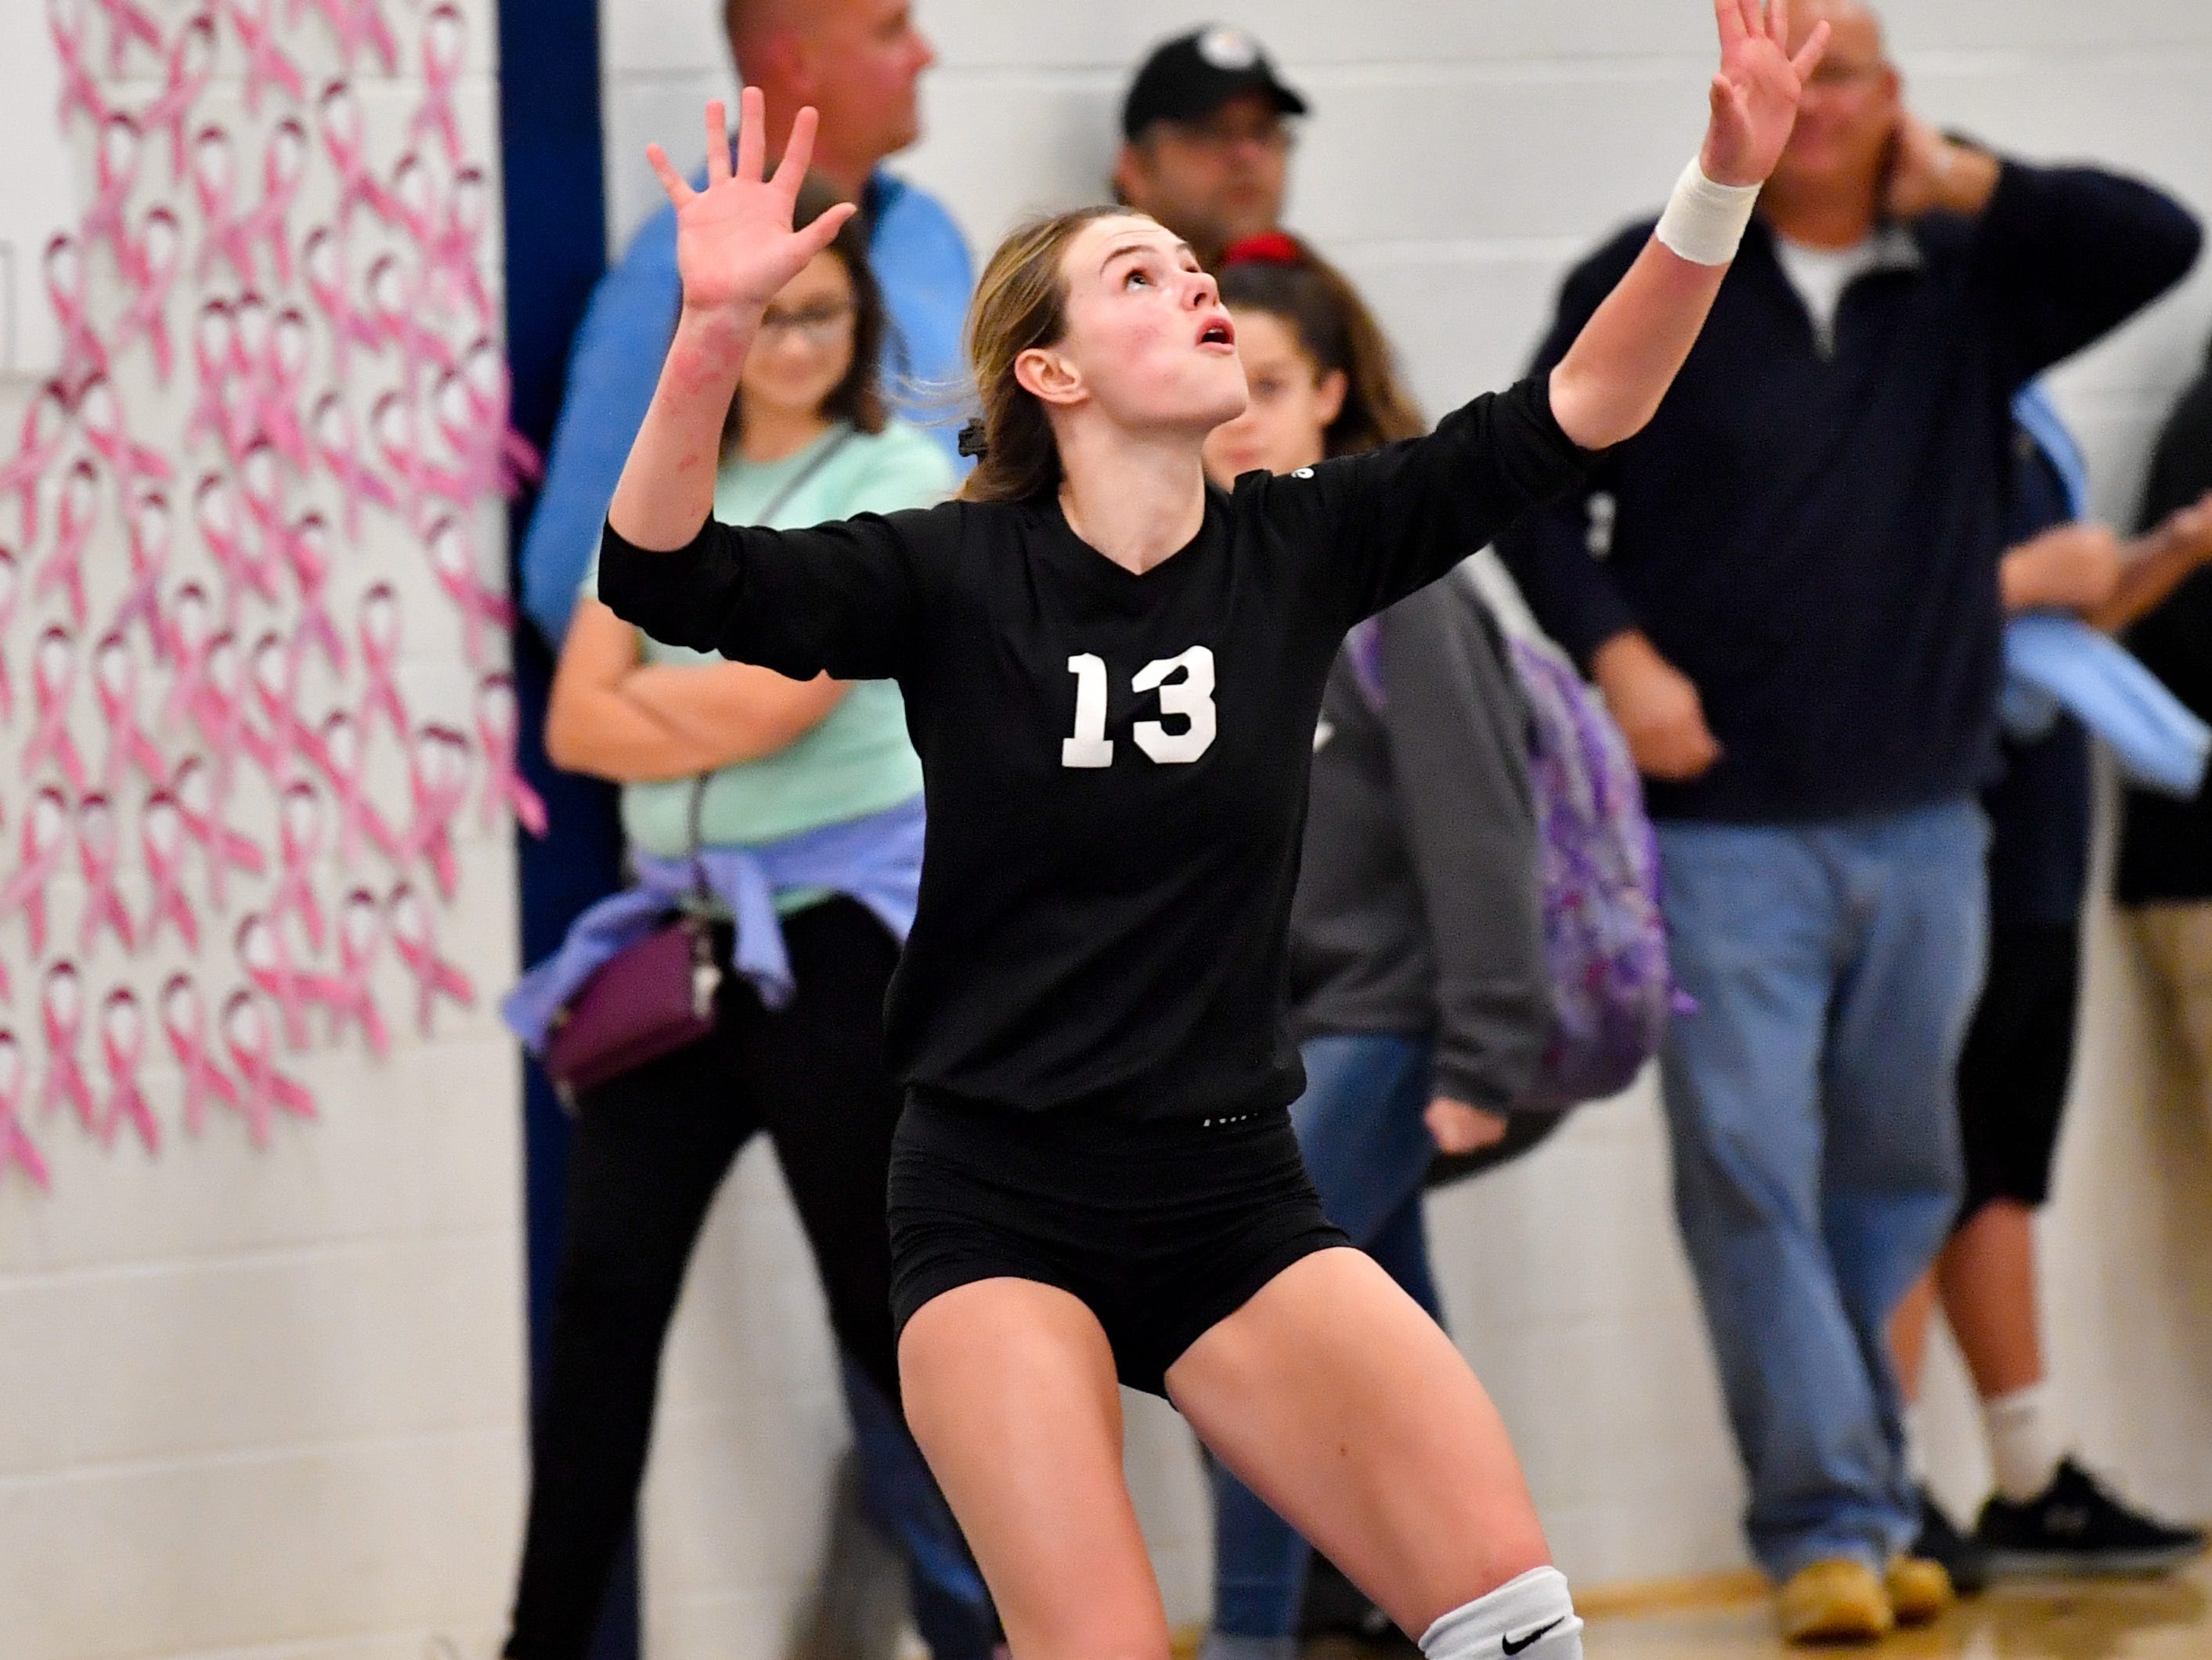 Elizabeth Mooney (13) serves the ball during the District 3 Class 3A girls' volleyball quarterfinals between Dover and York Suburban at West York High School, October 30, 2018. The Eagles defeated the Trojans 3-2.